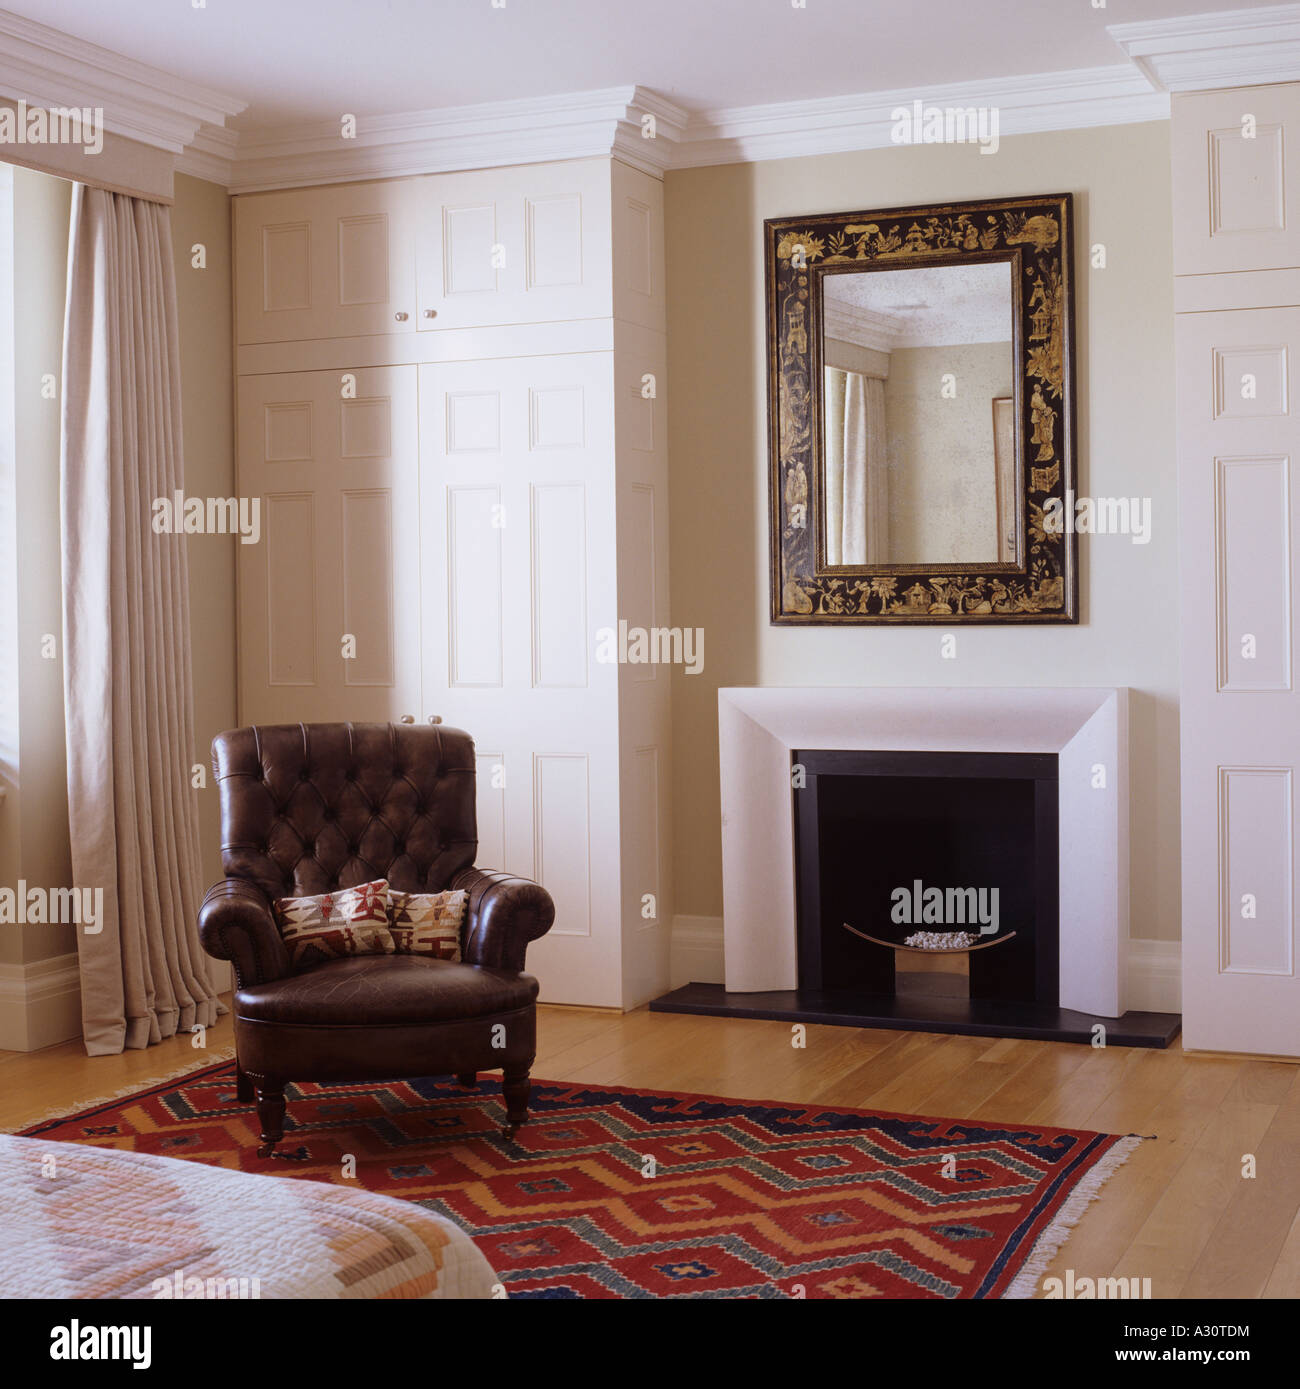 view of a fireplace and leather armchair in a bedroom - Stock Image